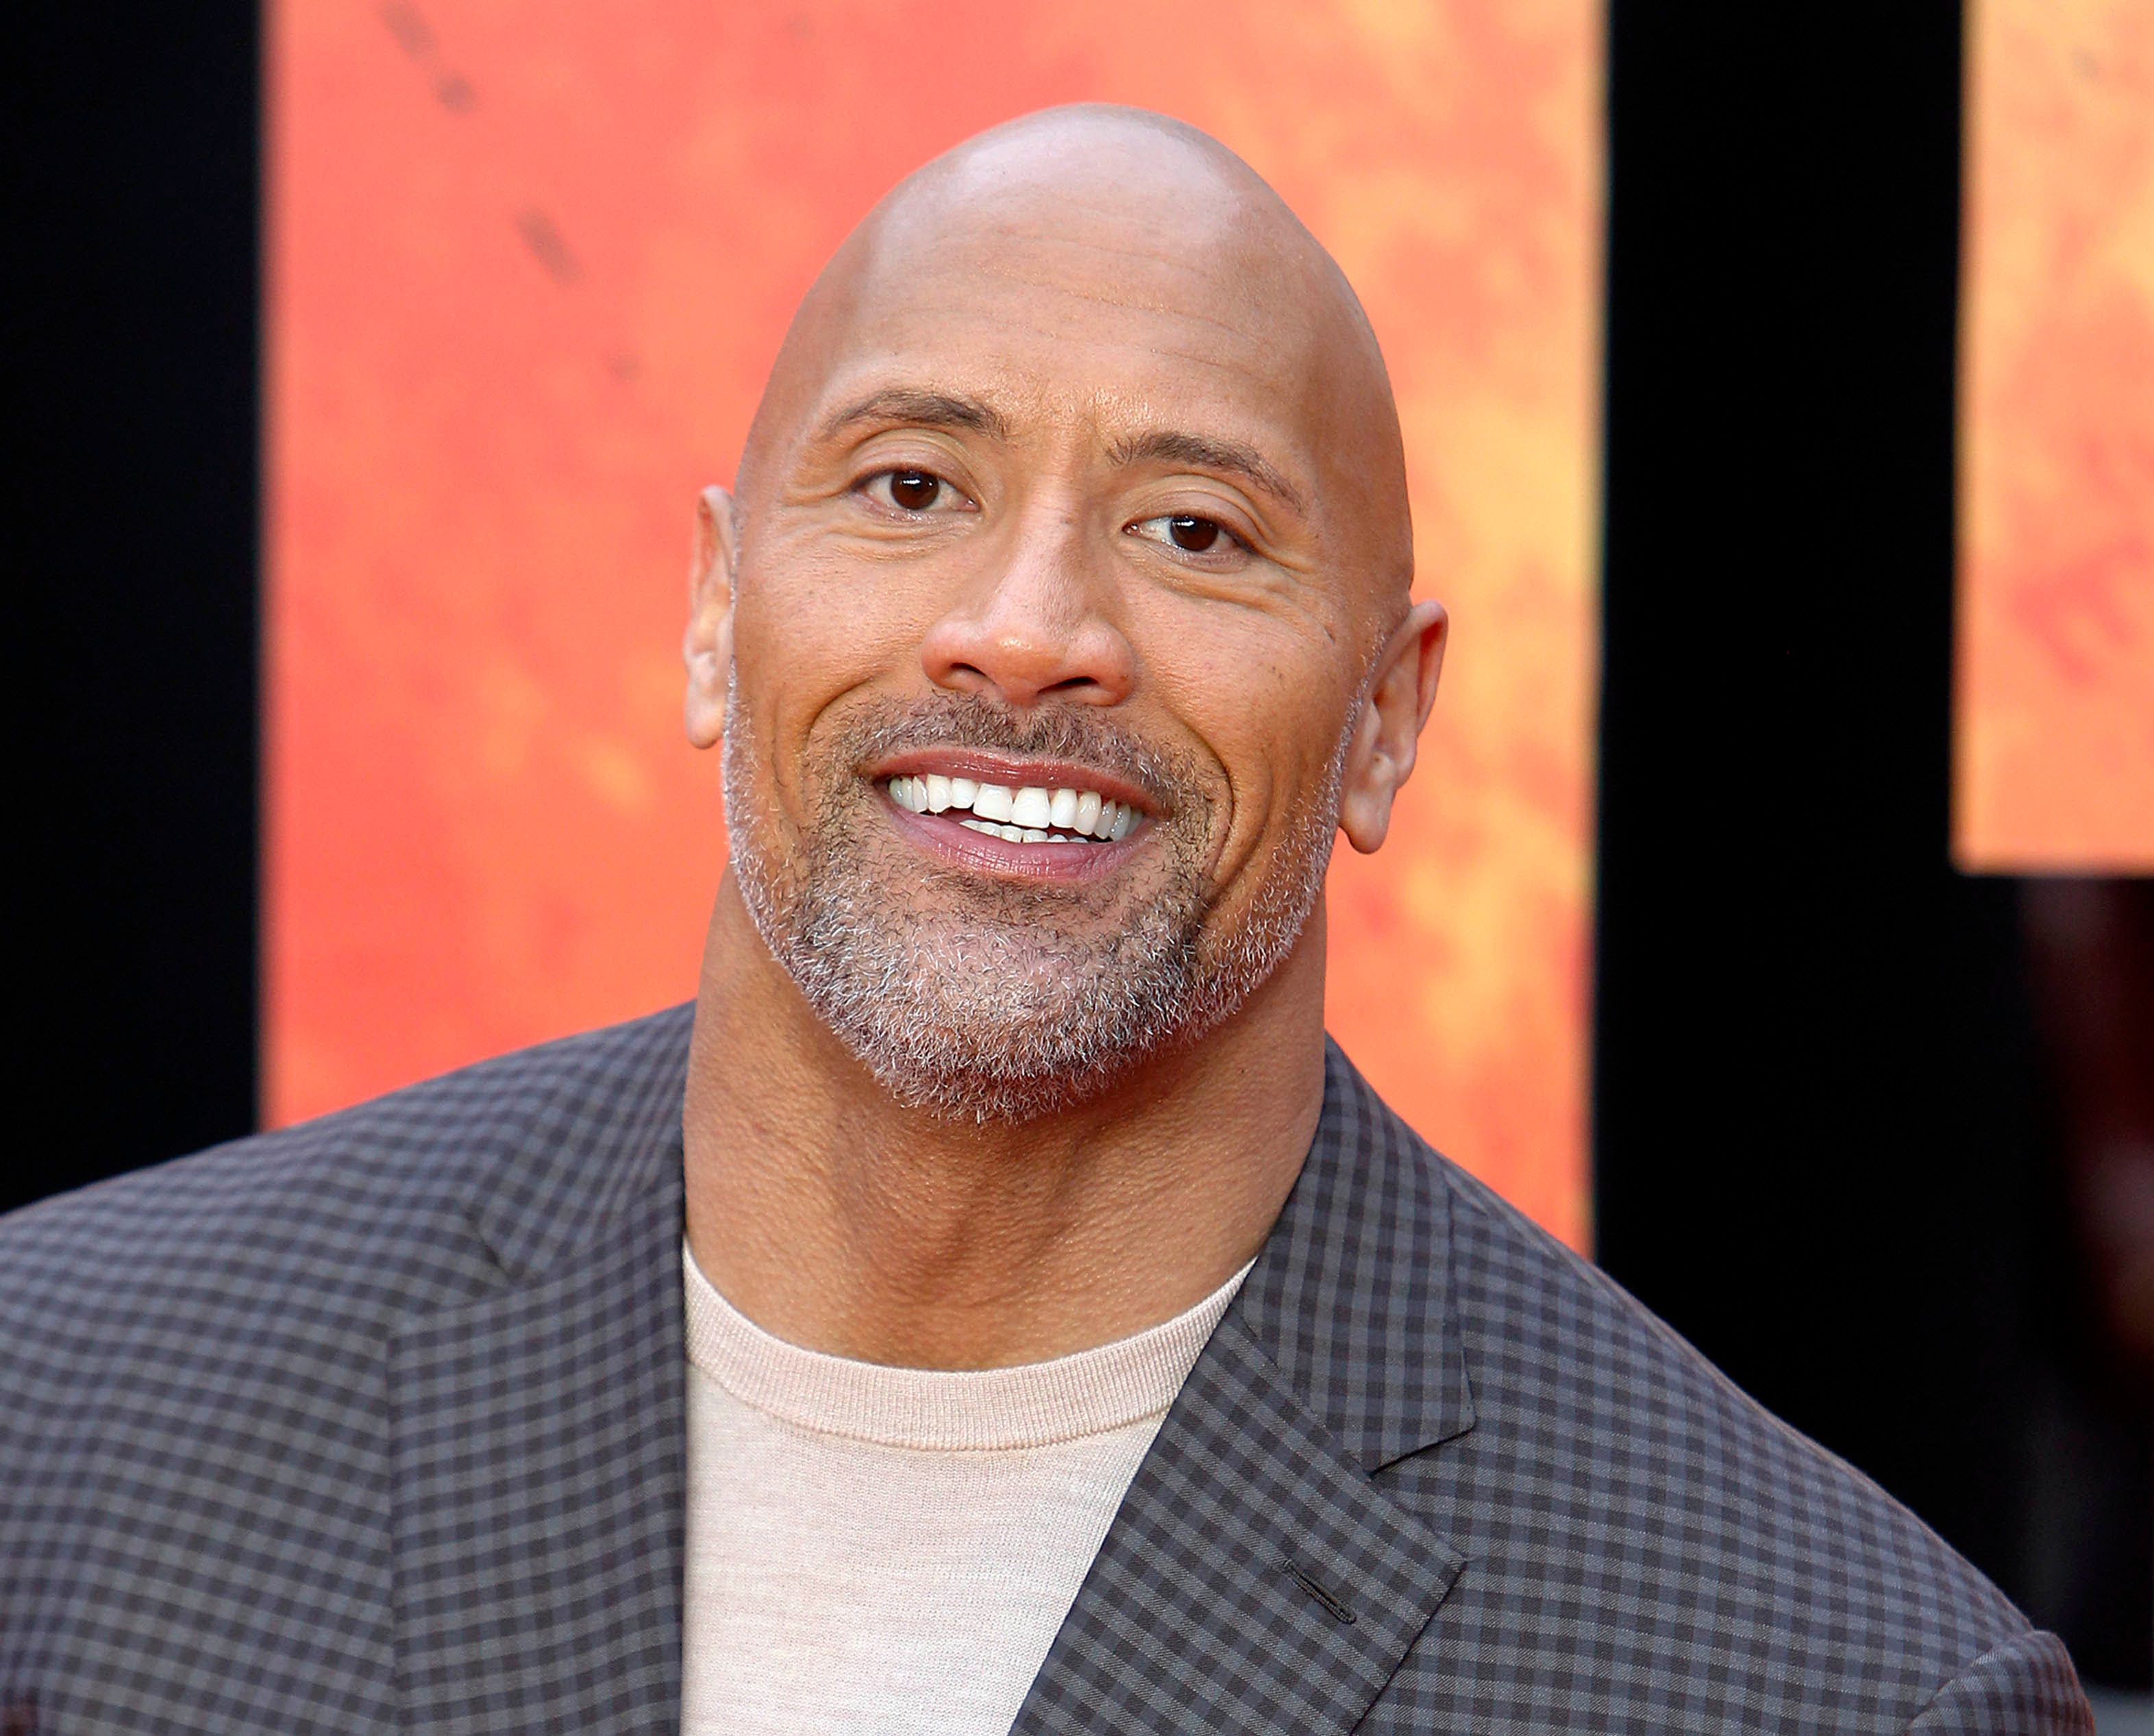 "Photo by: zz/KGC-254/STAR MAX/IPx 2018 4/11/18 Dwayne The Rock Johnson at the European premiere of ""Rampage"" held at Cineworld Leicester Square. (London, England, UK)"